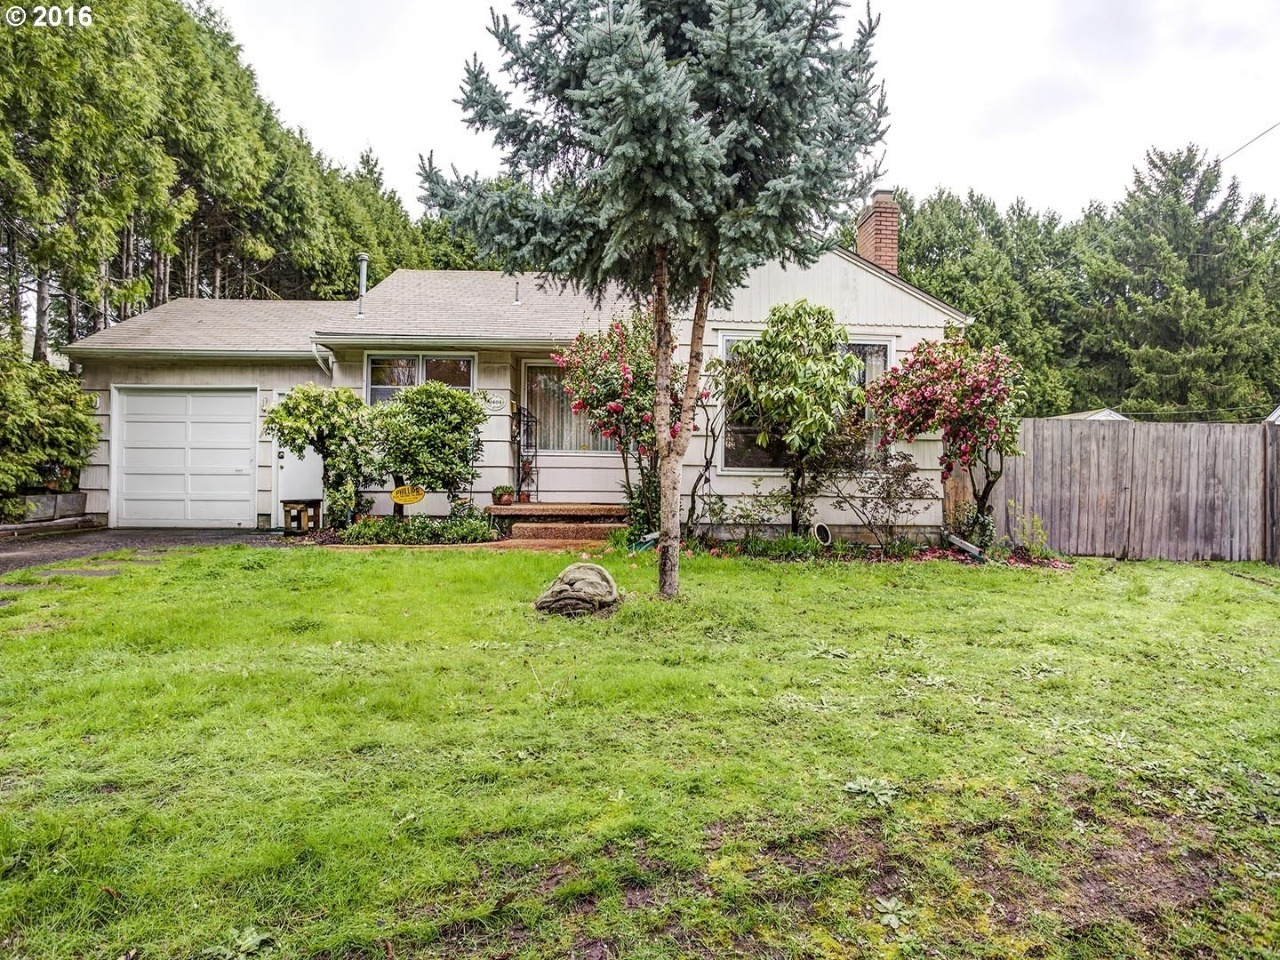 2404 SE 71st Ave, Portland, OR 97206 | MLS# 16263361 | Redfin